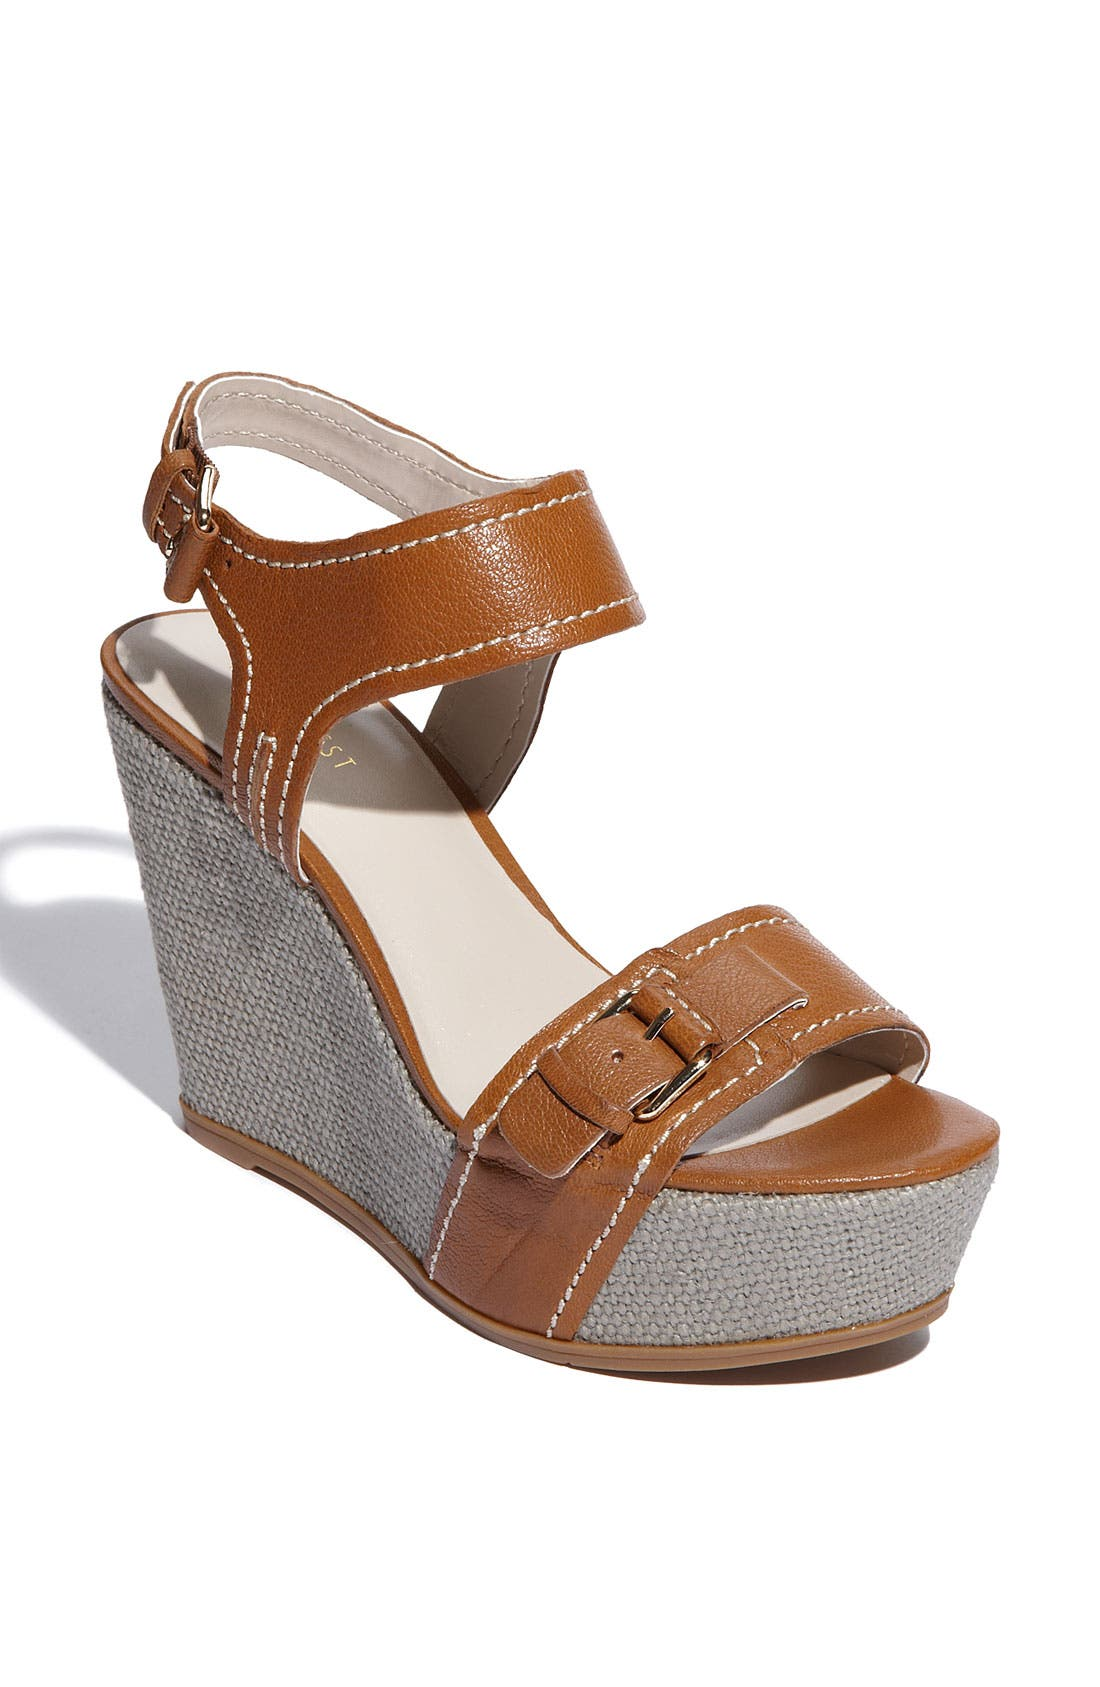 Main Image - Nine West 'Leoness' Wedge Sandal